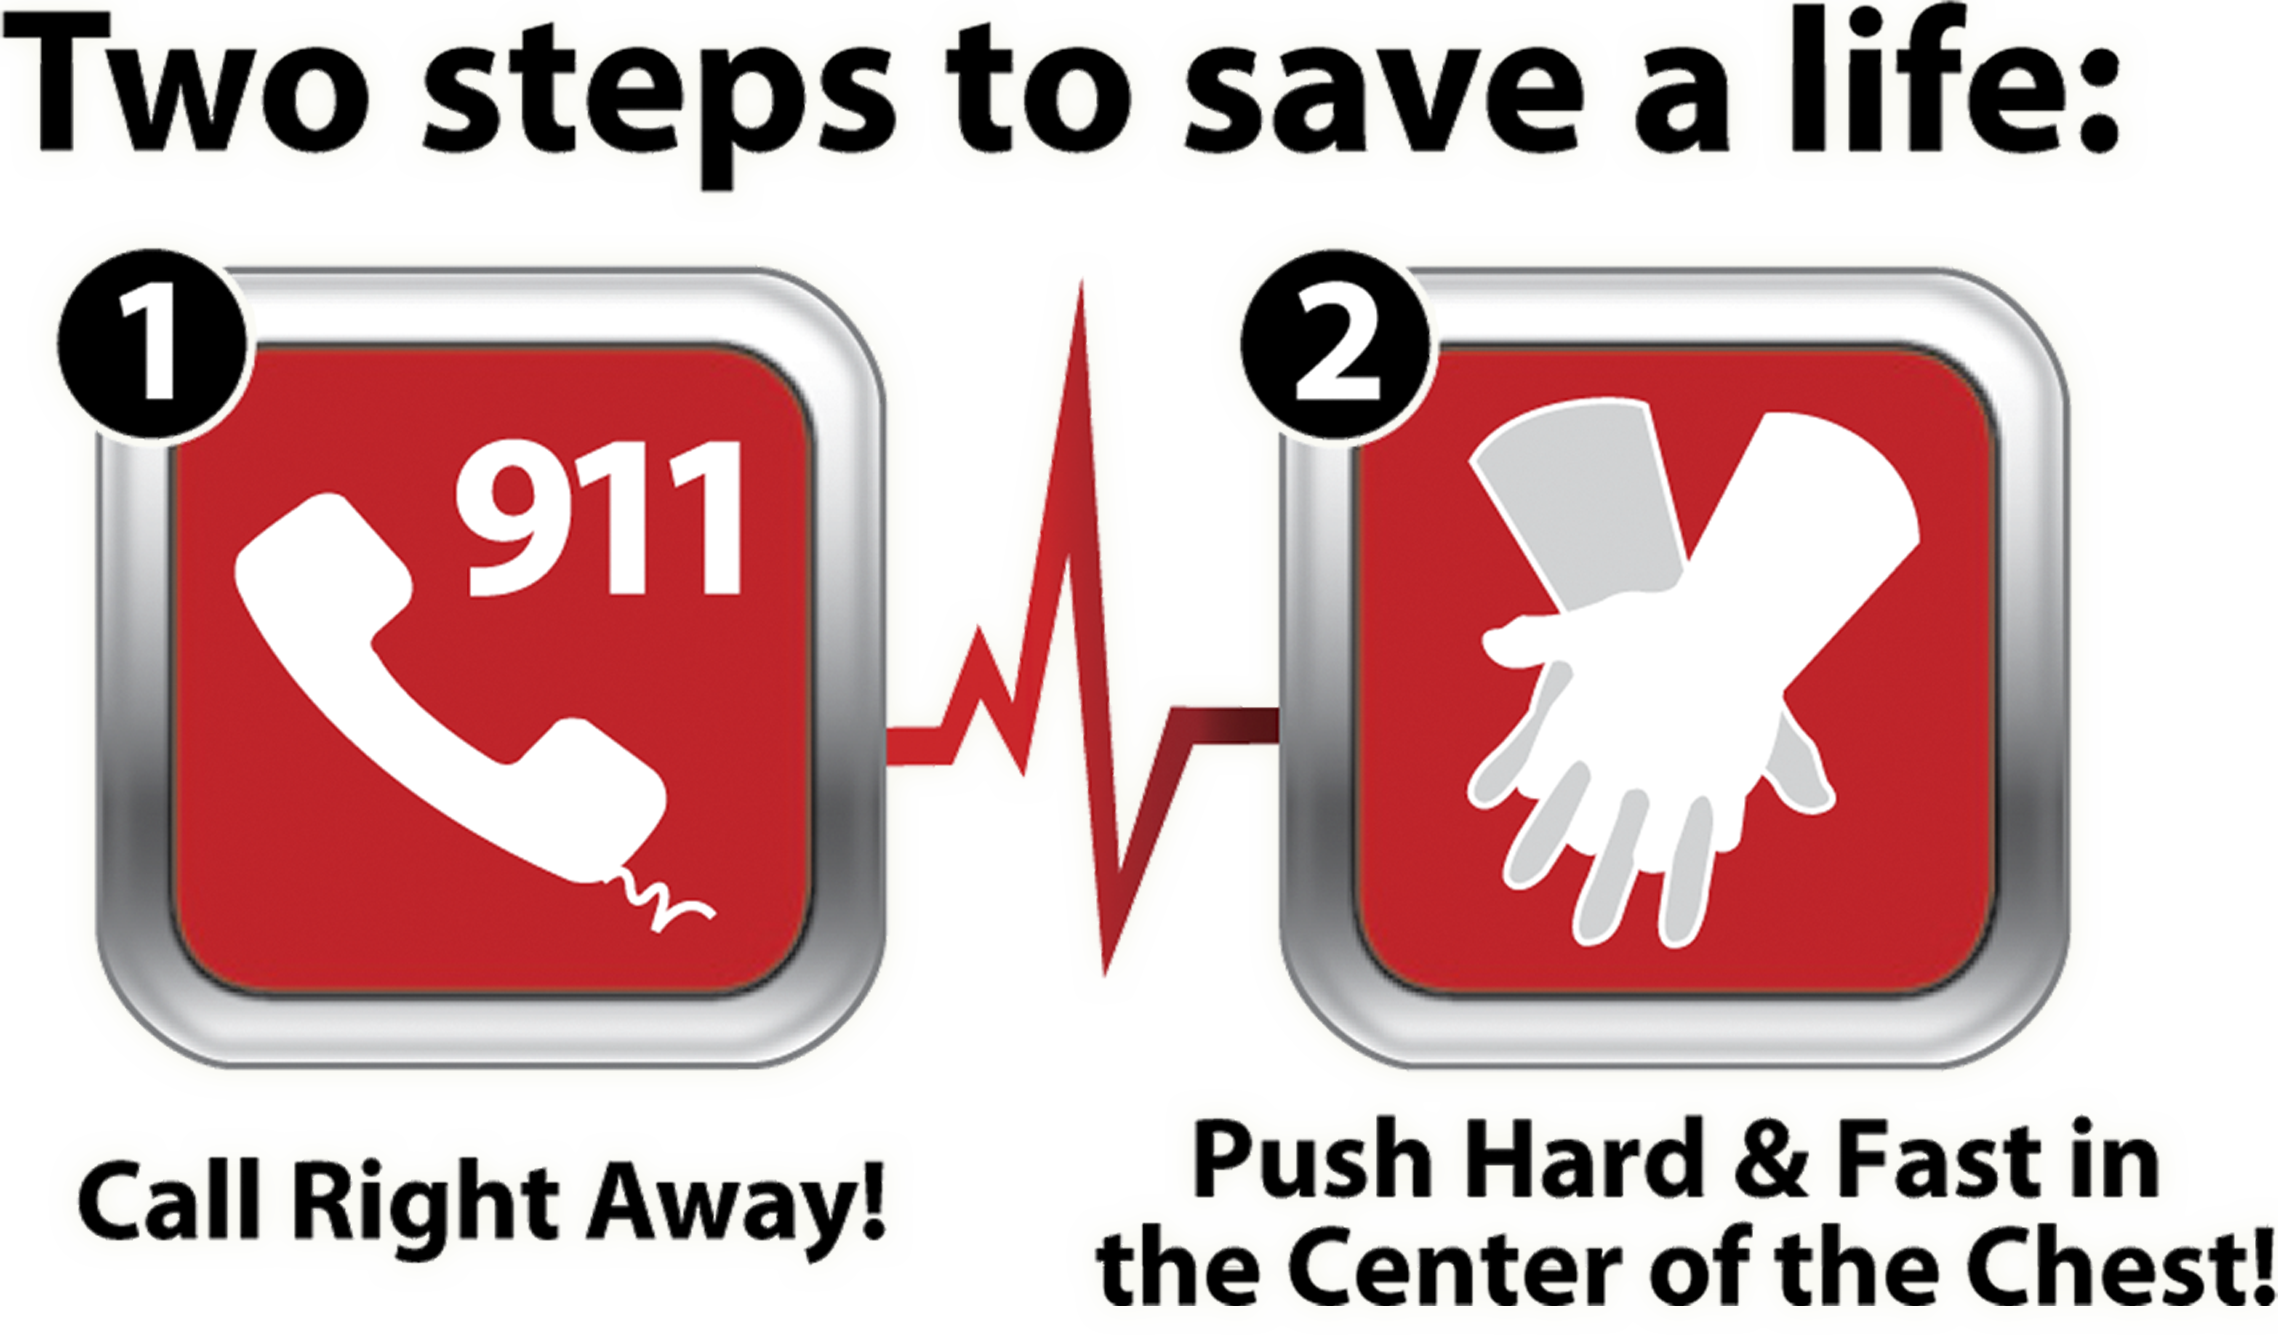 Learn Hands Only CPR - Free CPR classes are offered by Florida Training Academy